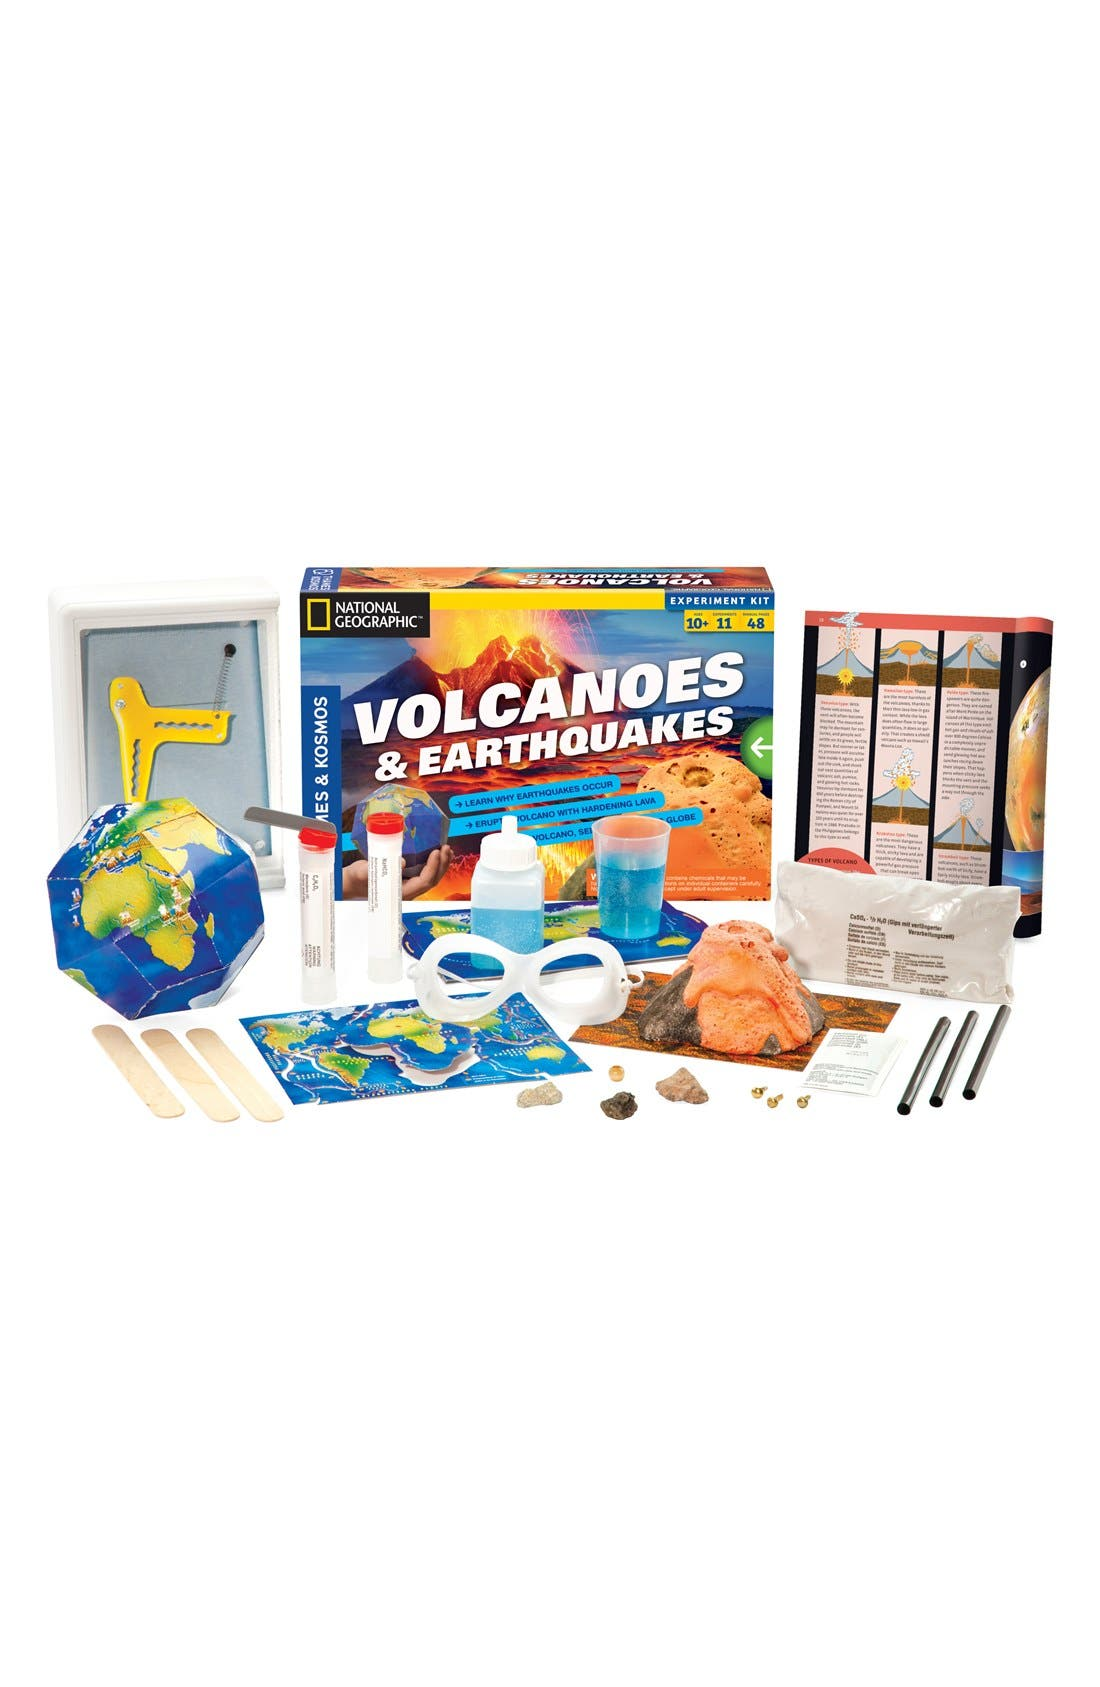 Thames & Kosmos 'Volcanoes & Earthquakes' Experiment Kit